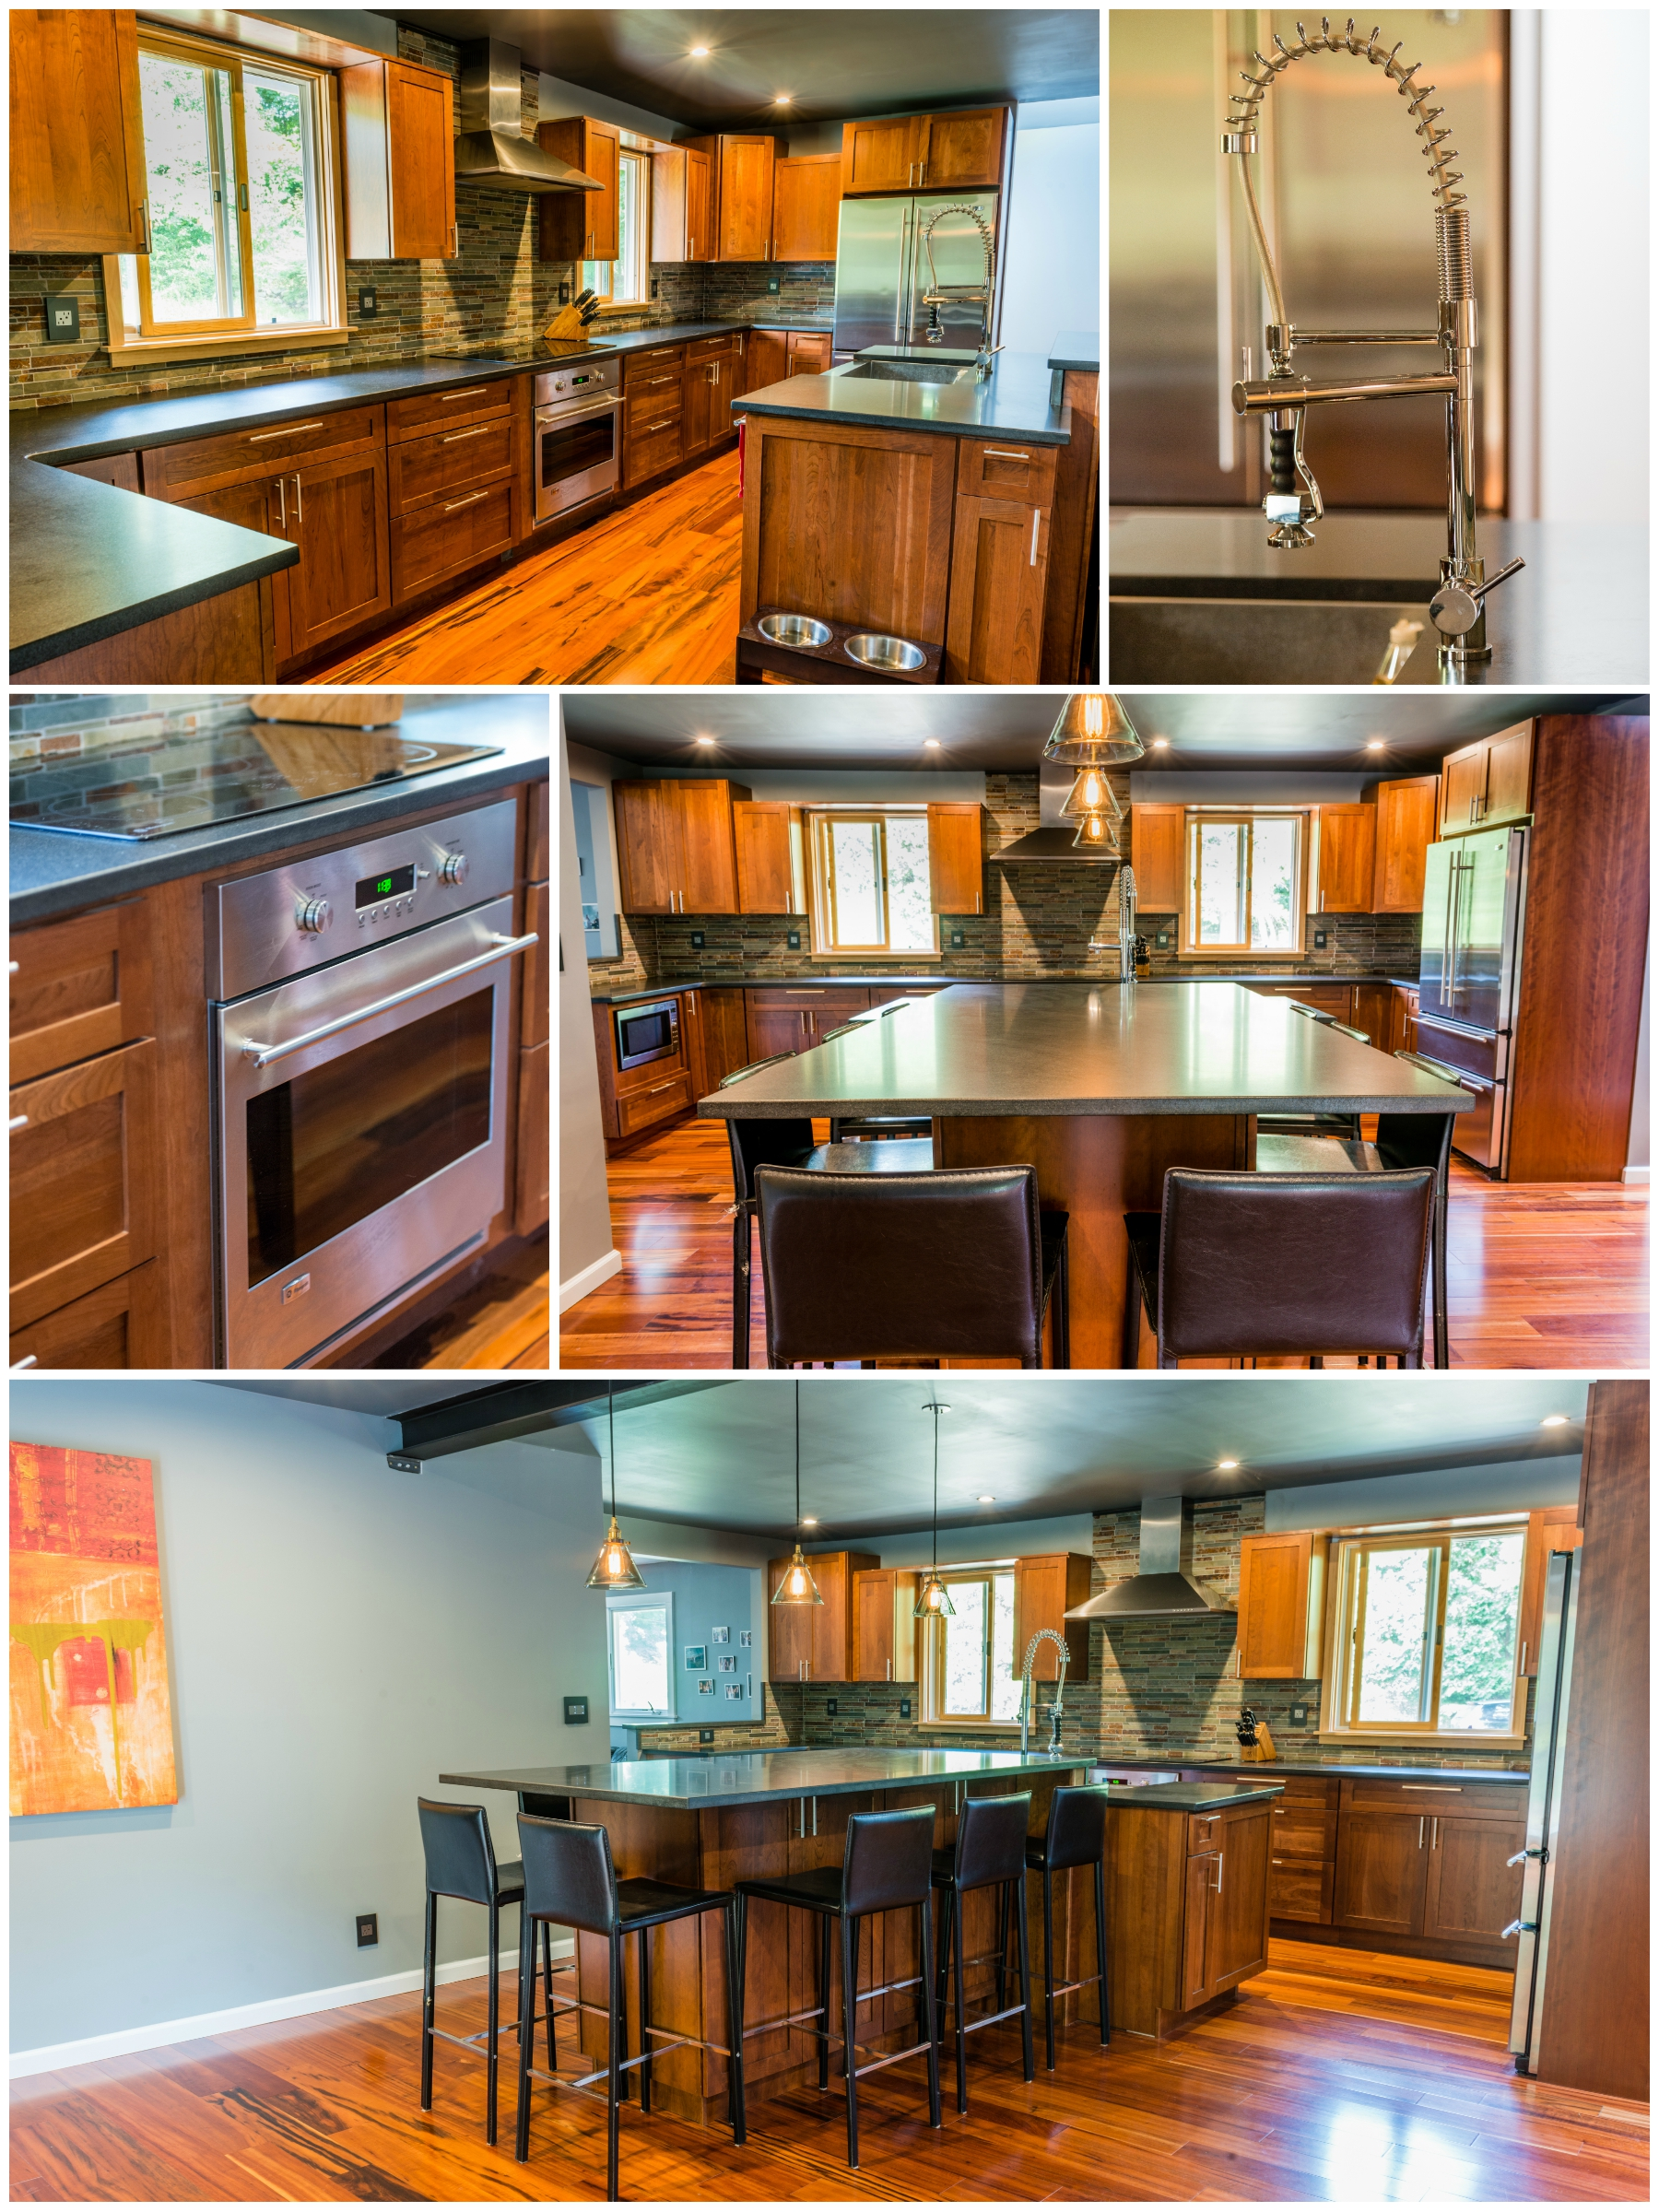 Gorgeous LED lighting throughout the house and custom cabinetry in the kitchen.